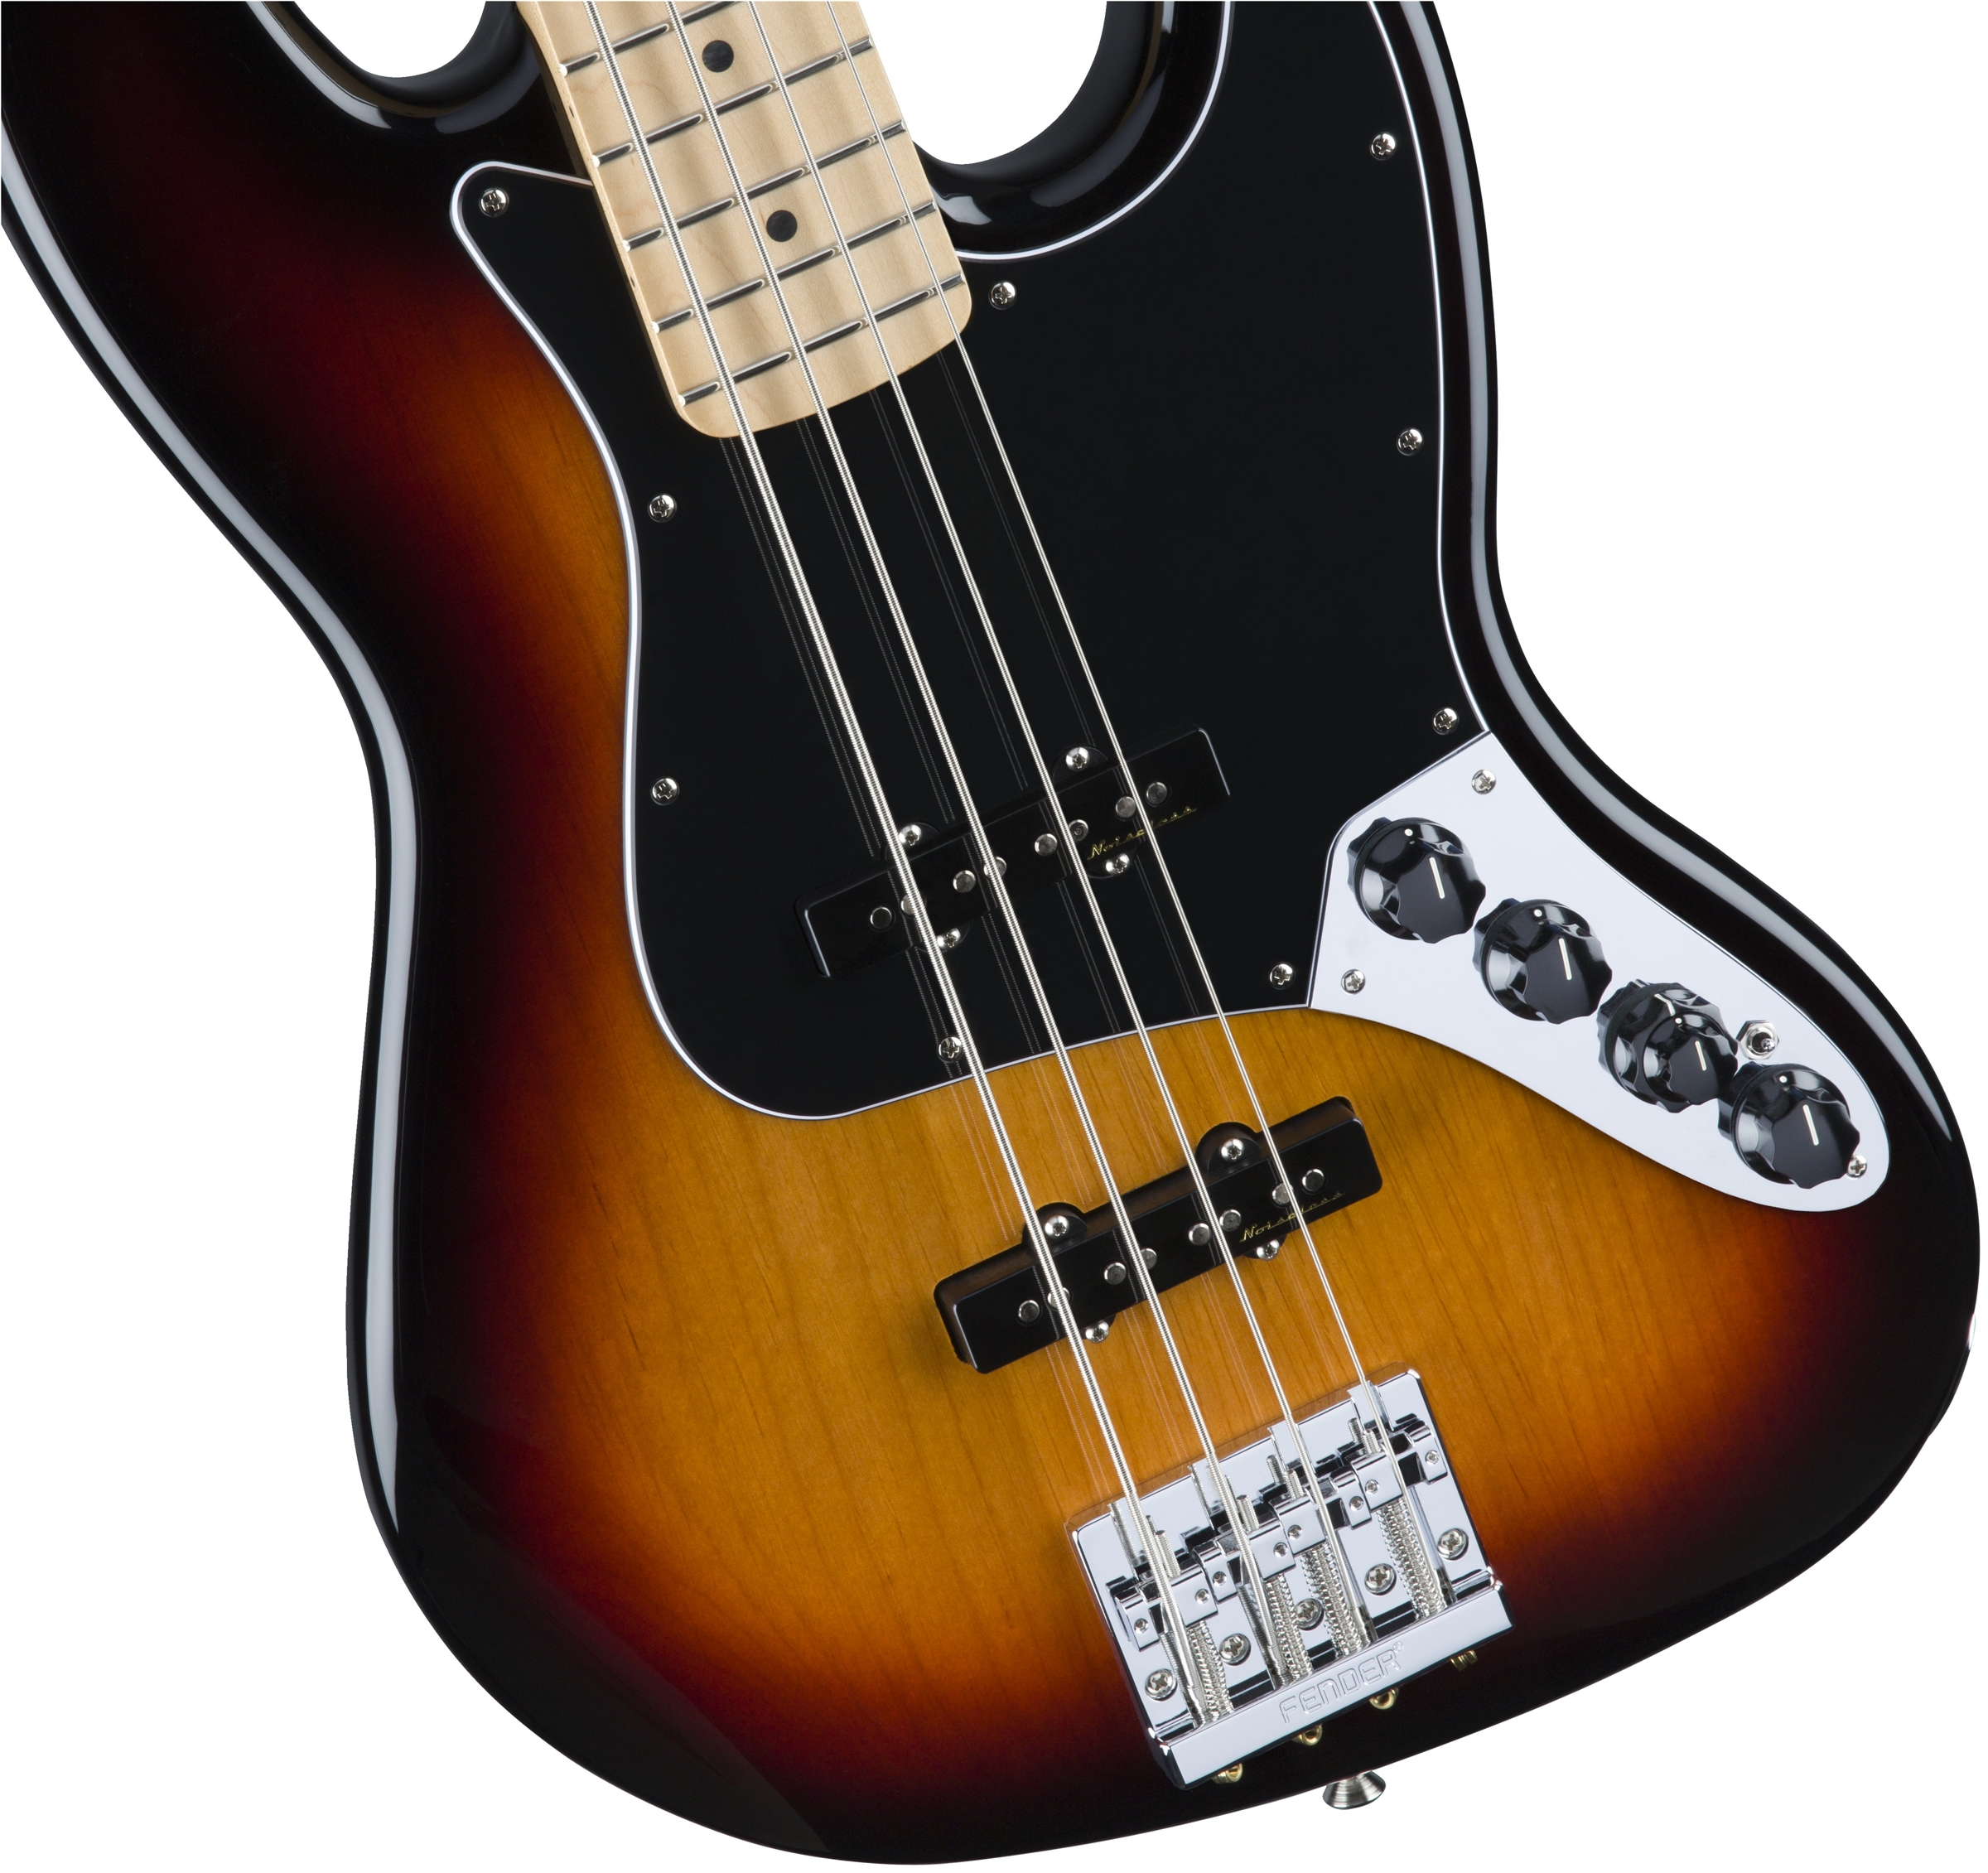 [DIAGRAM_38EU]  Deluxe Active Jazz Bass® | Electric Basses | Fender Mexican Jazz Bass Wiring Diagram |  | Shop Fender